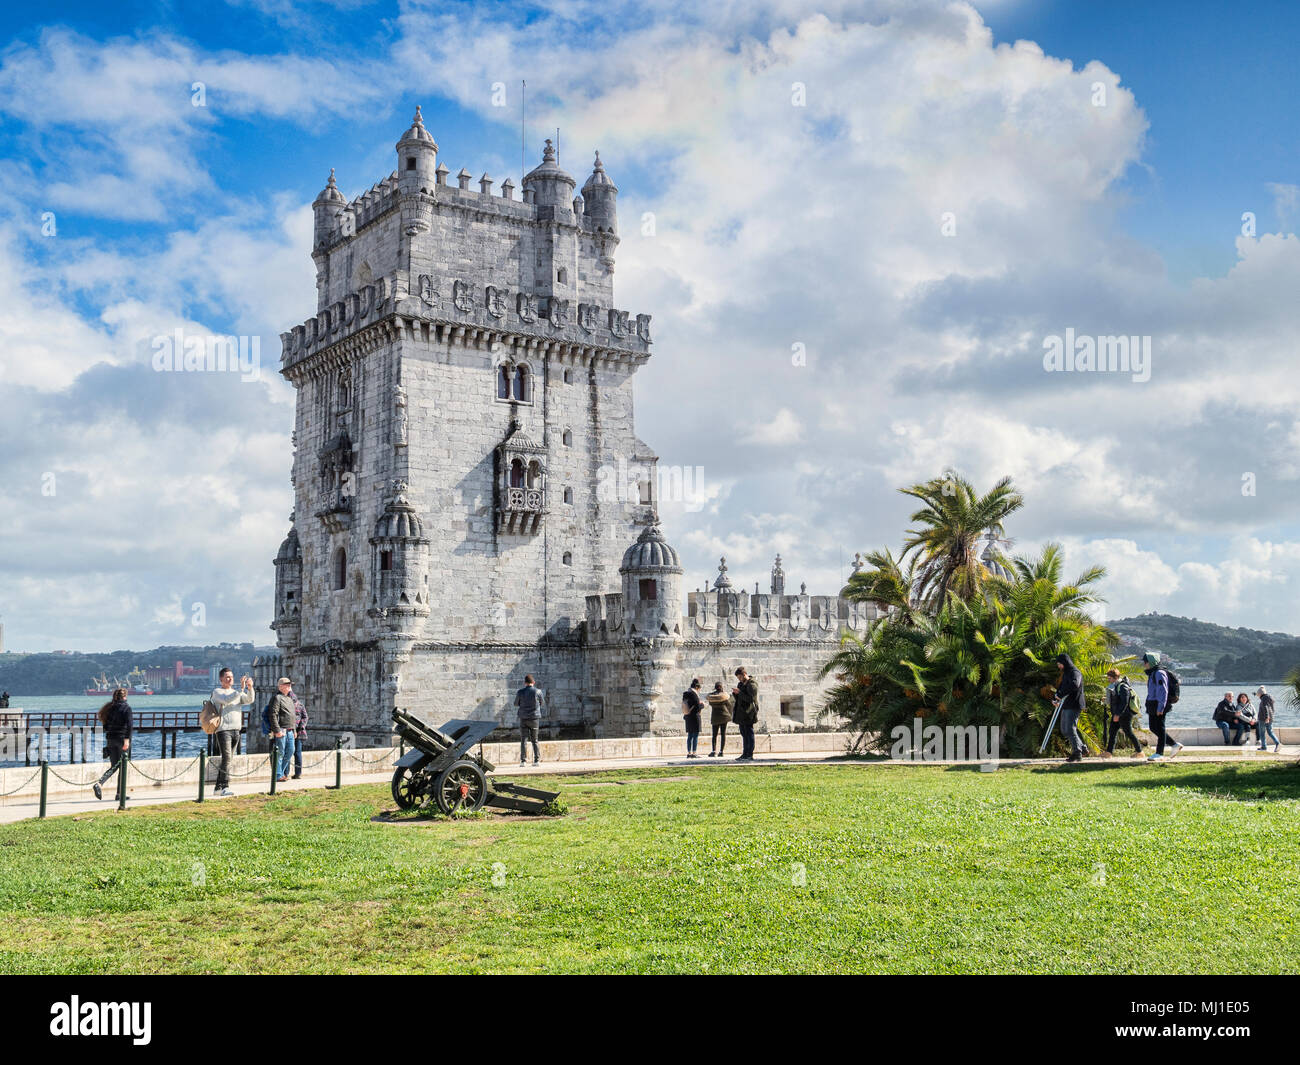 5 March 2018: Lisbon Portugal -The Belem Tower, famous landmark and UNESCO World Heritage Site. - Stock Image